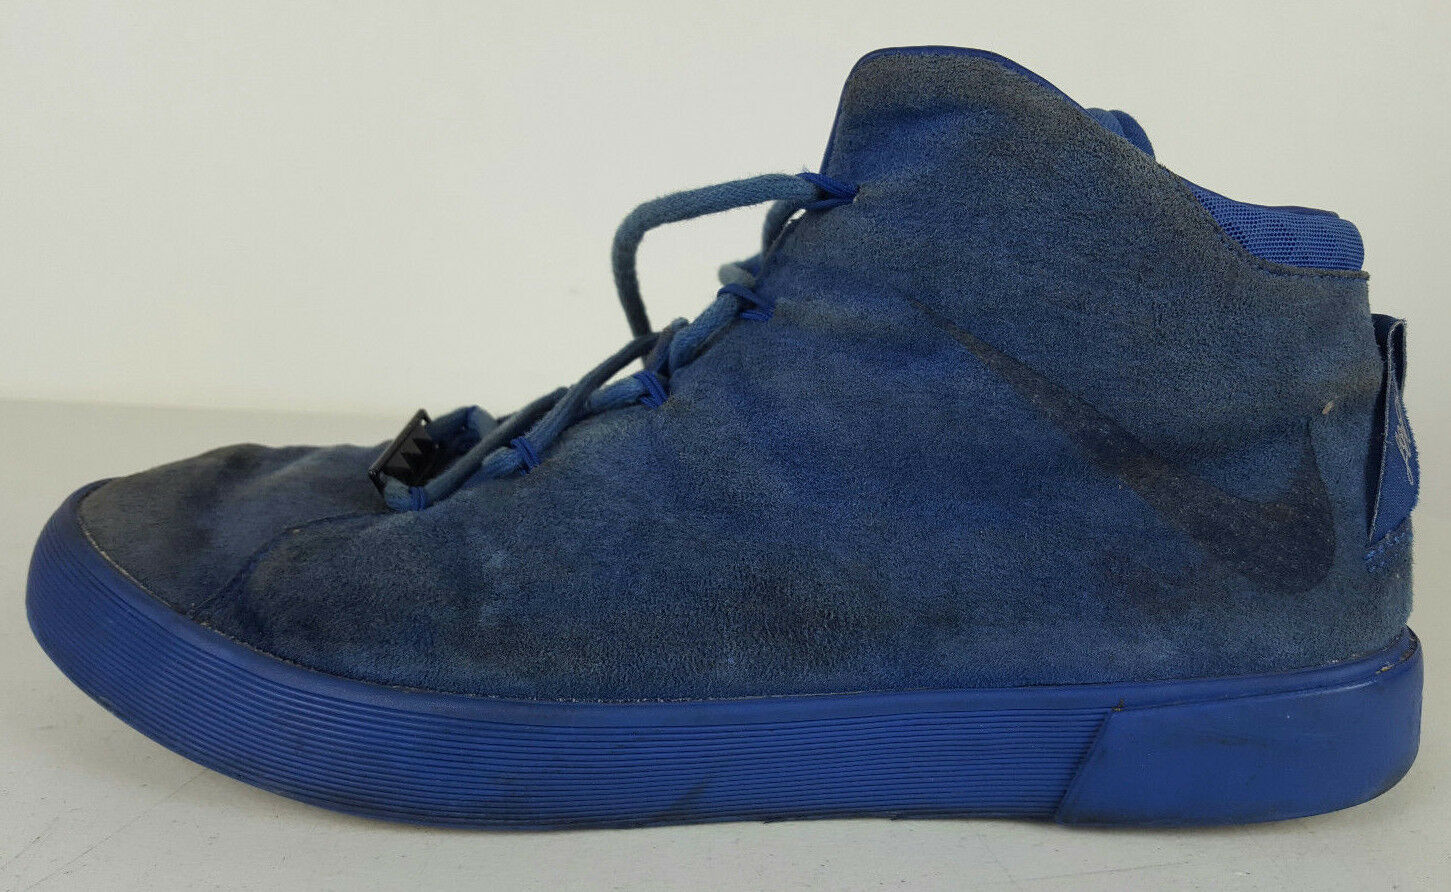 Beaters Nike LeBron 12 Lifestyle Blue Suede Basketball Shoes Men's 9 716417-400